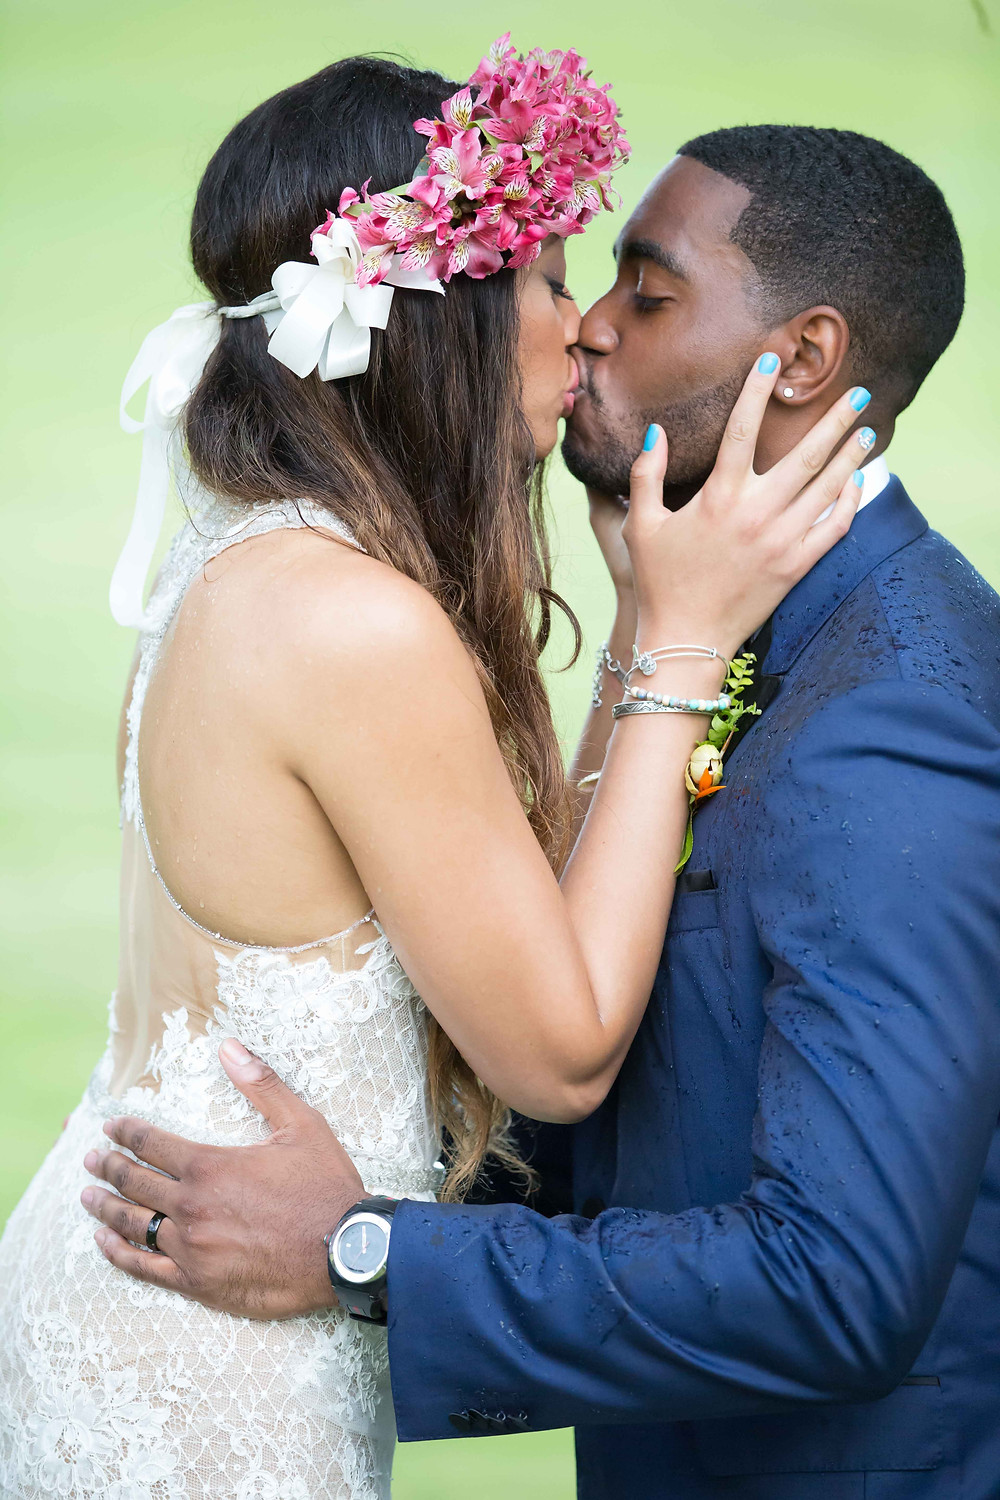 The bride and groom share their first kiss during the destination wedding in Punta Cana, Dominican Republic.